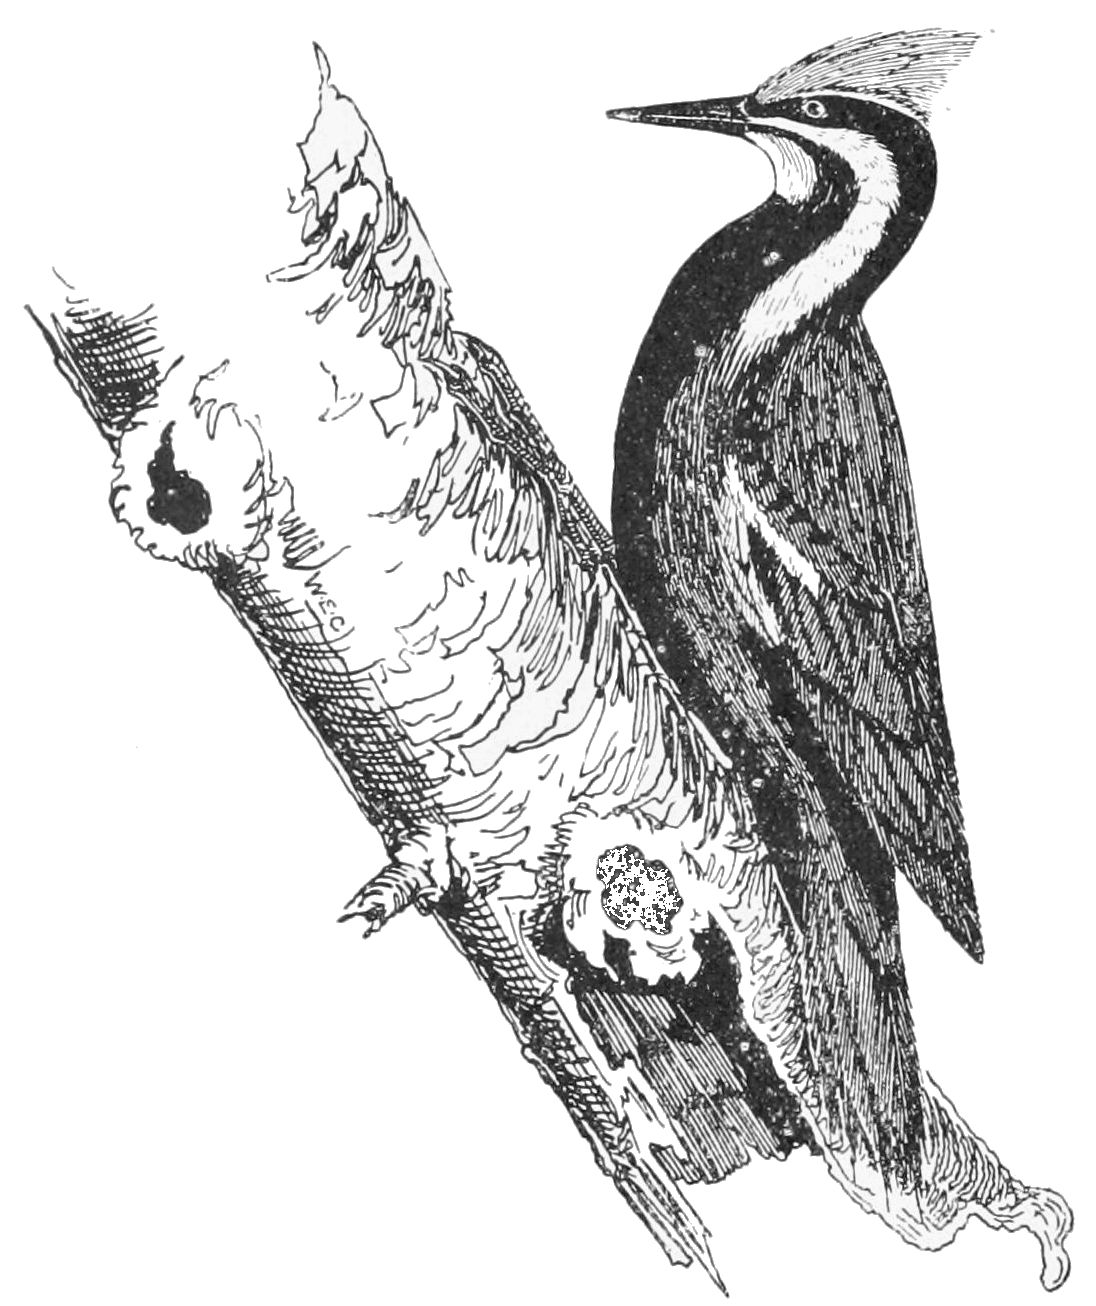 PSM V53 D362 Plieated woodpecker.jpg